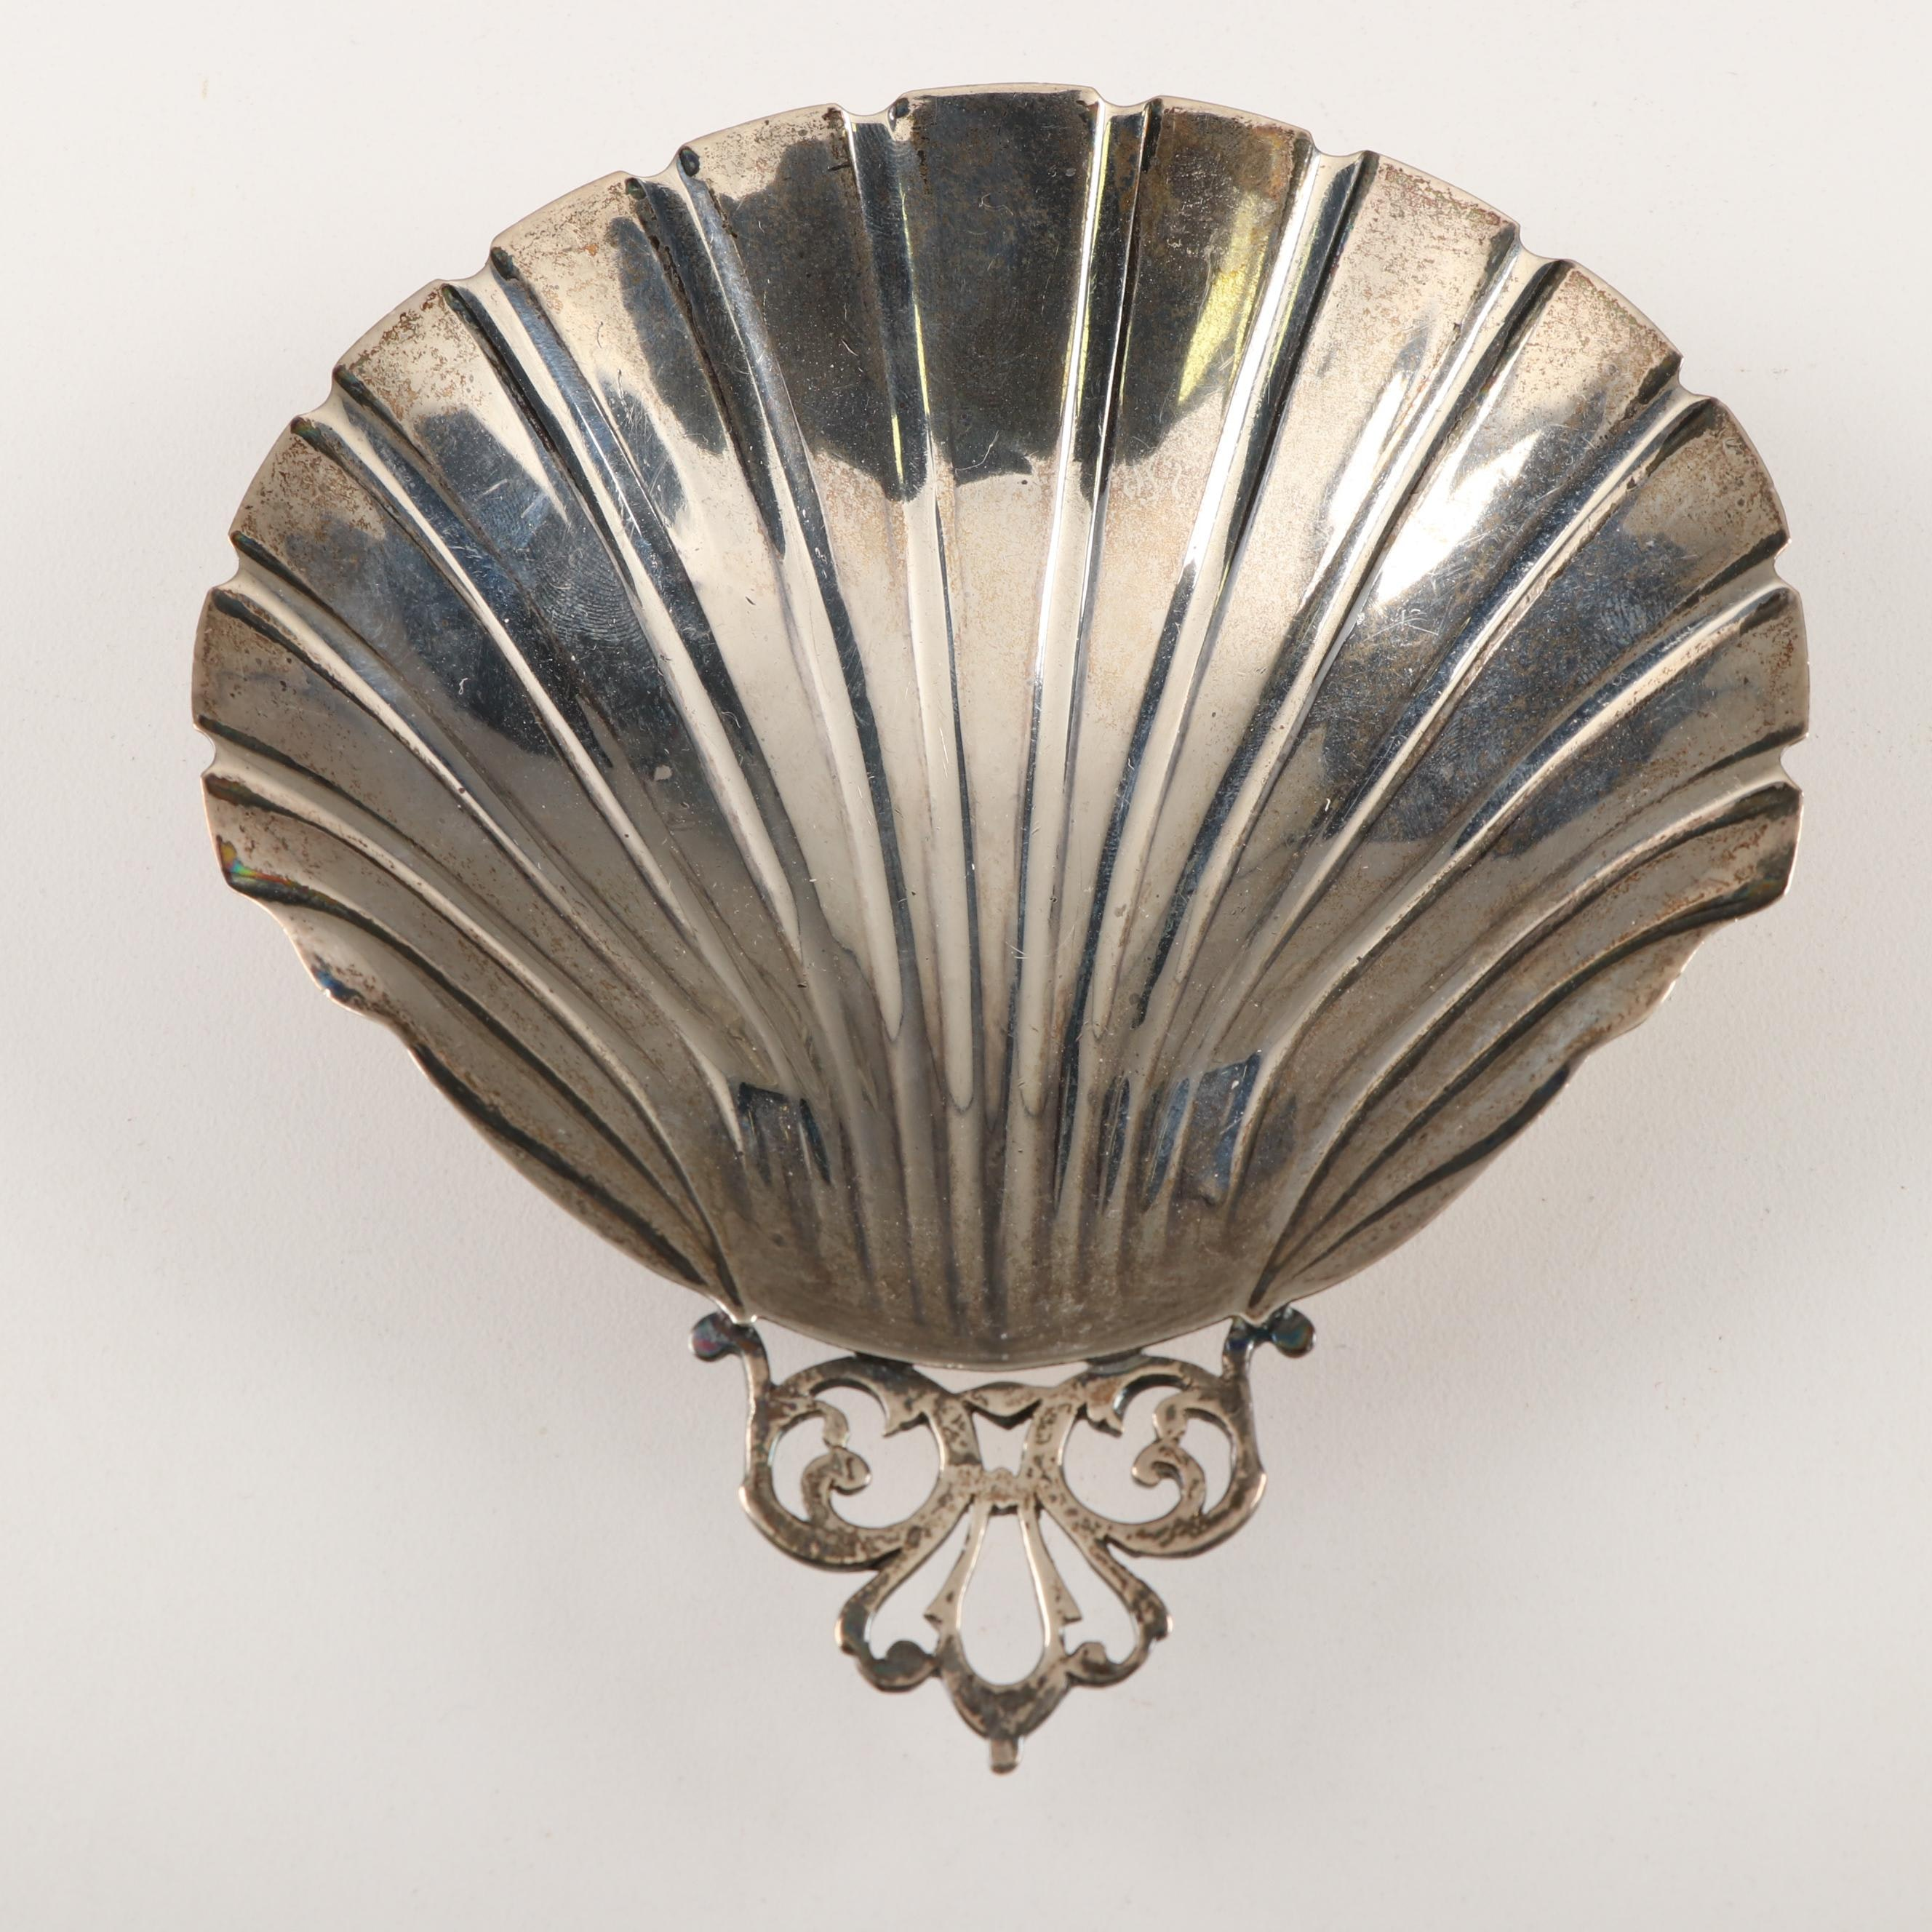 Black, Starr and Gorham Sterling Shell Form Bonbon Dish